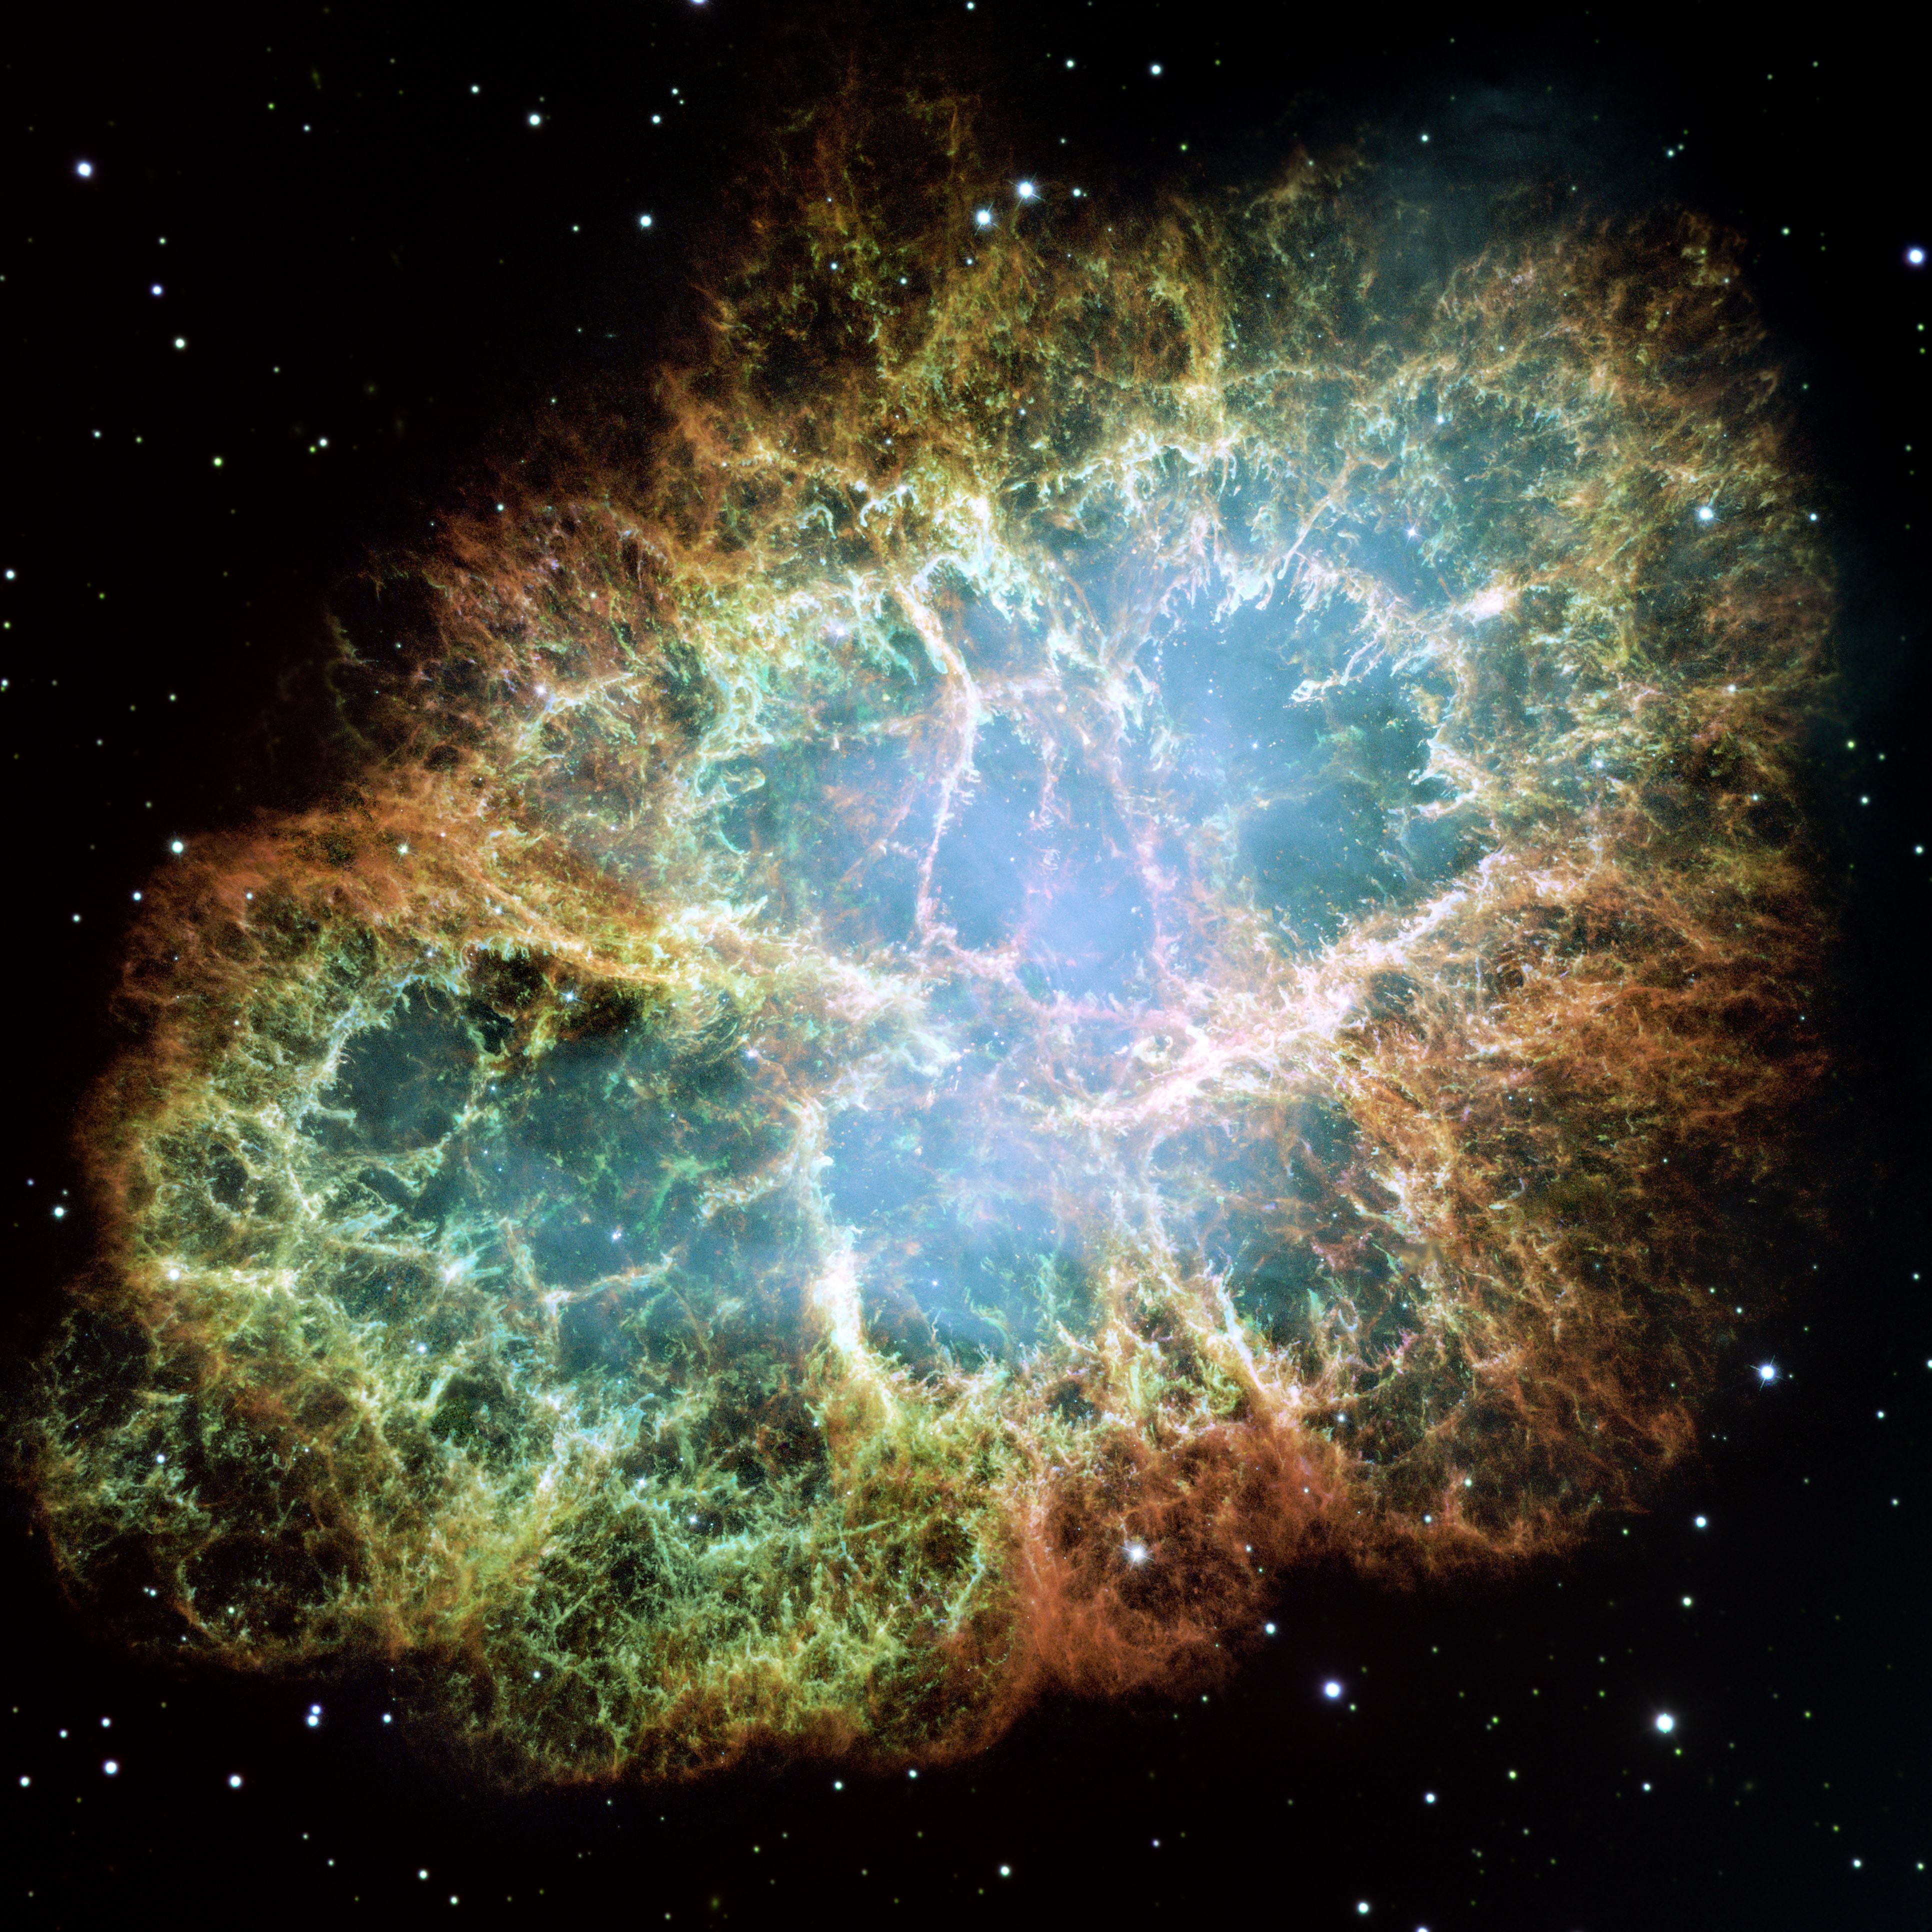 006 Crab Nebula Interesting Astronomy Topics For Research Marvelous Paper Full